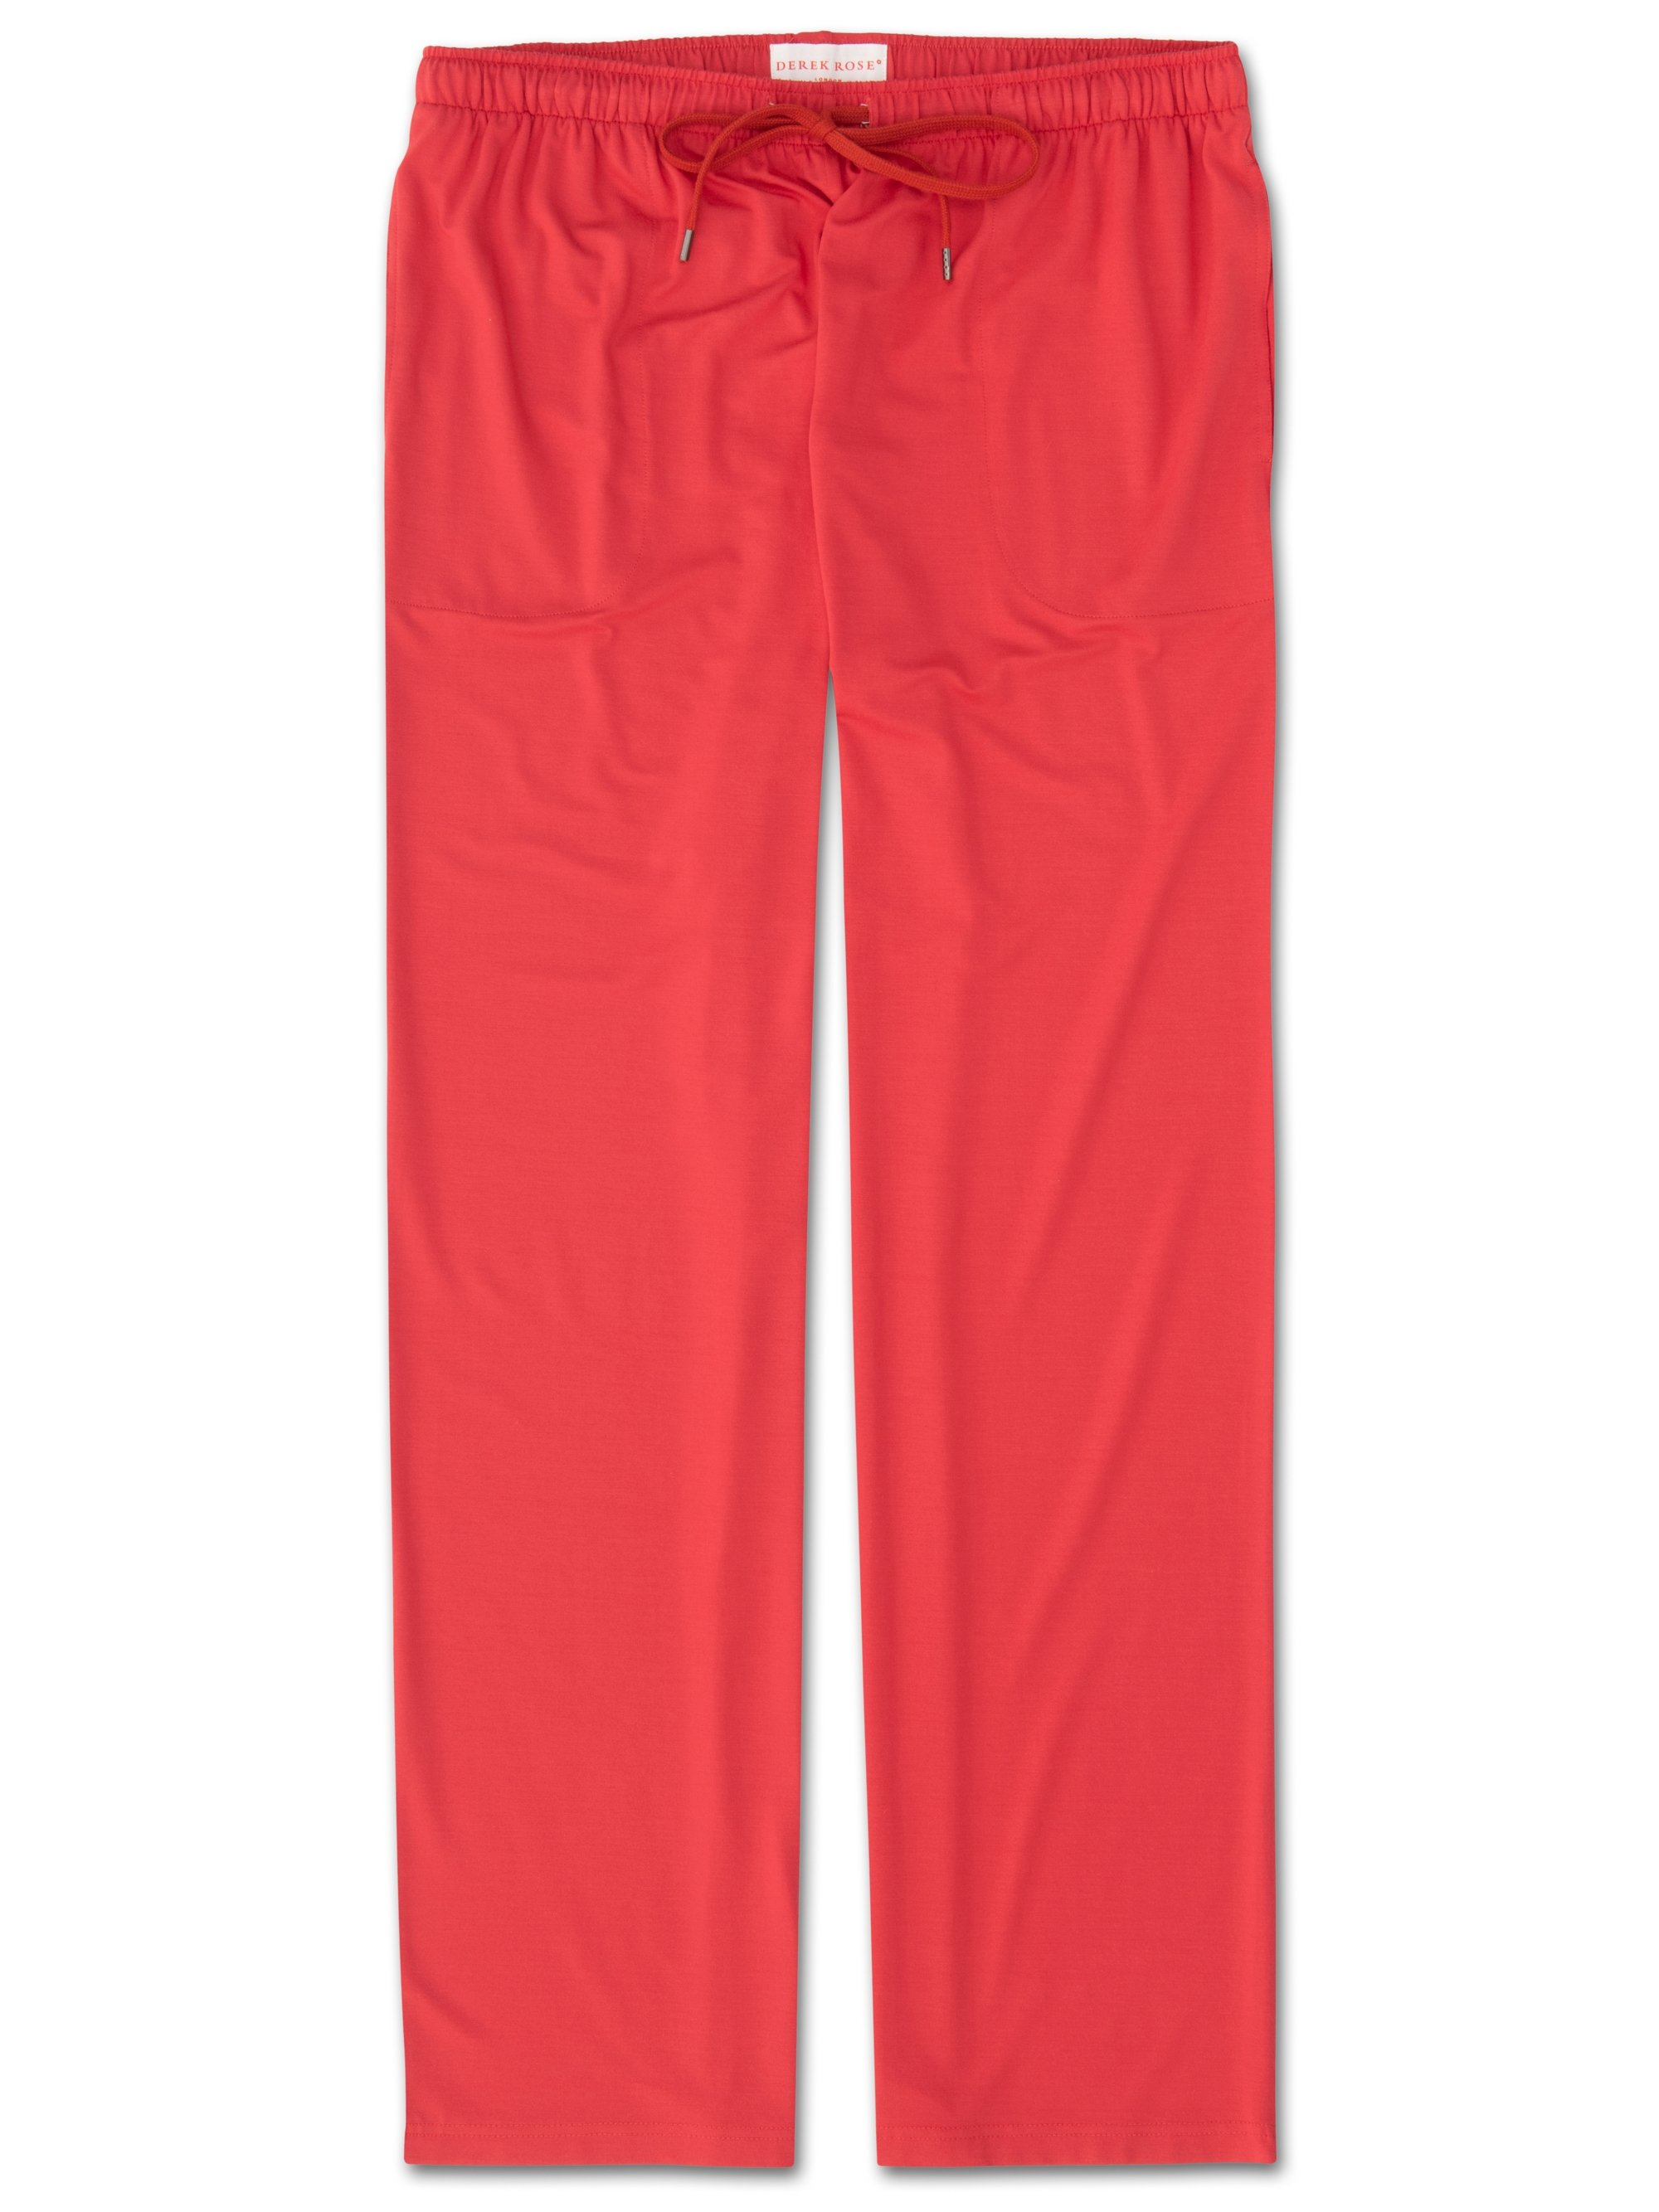 Men's Jersey Trousers Basel 6 Micro Modal Stretch Red